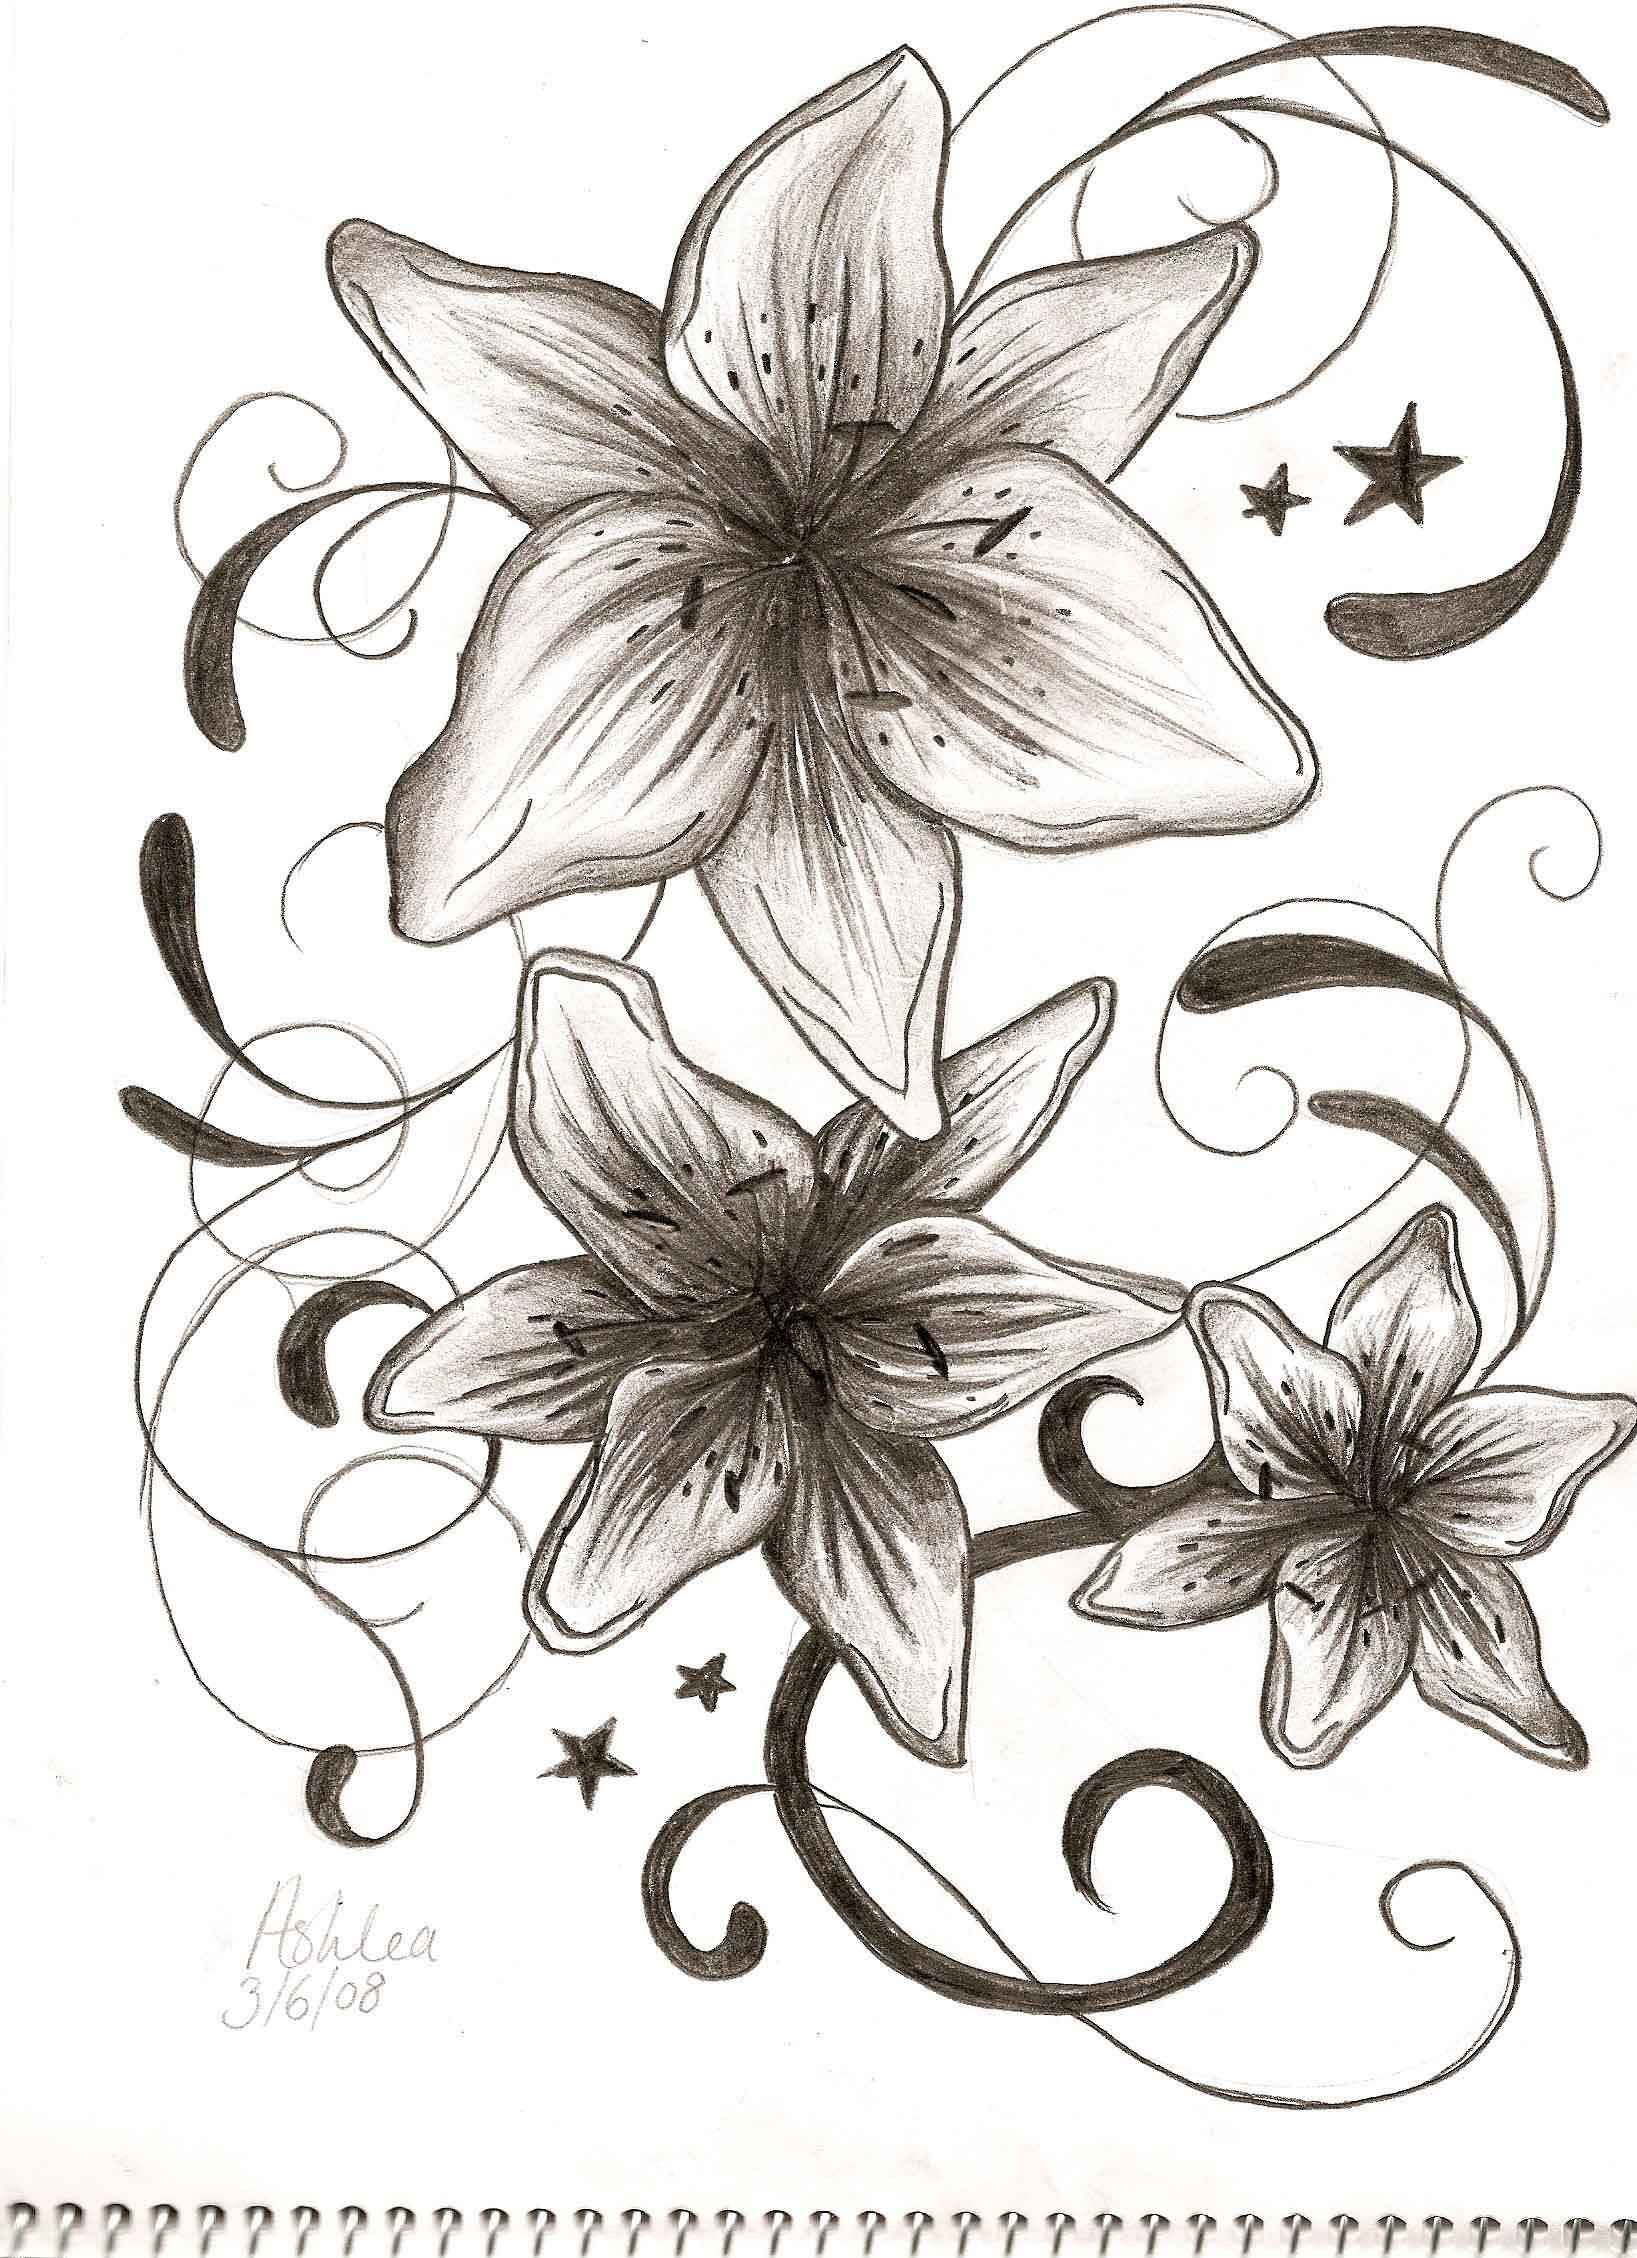 Lily flower tattoo design topsimages amazing lily flowers tattoos design tattooooos pinterest jpg 1637x2258 lily flower tattoo design izmirmasajfo